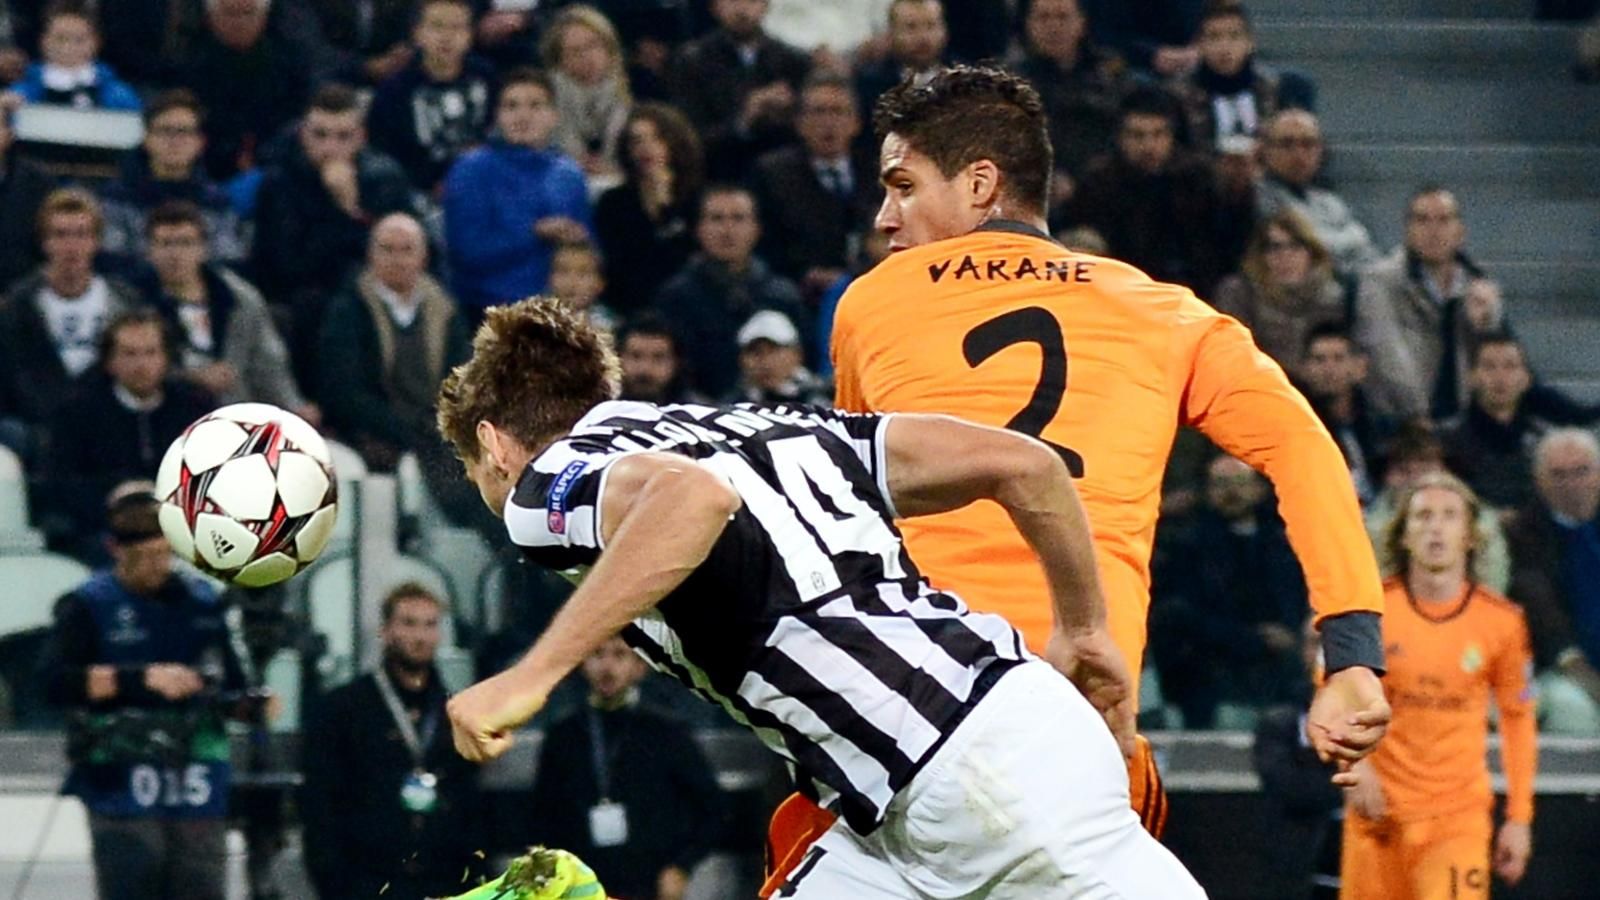 Match Juventus - Real Madrid en direct live streaming